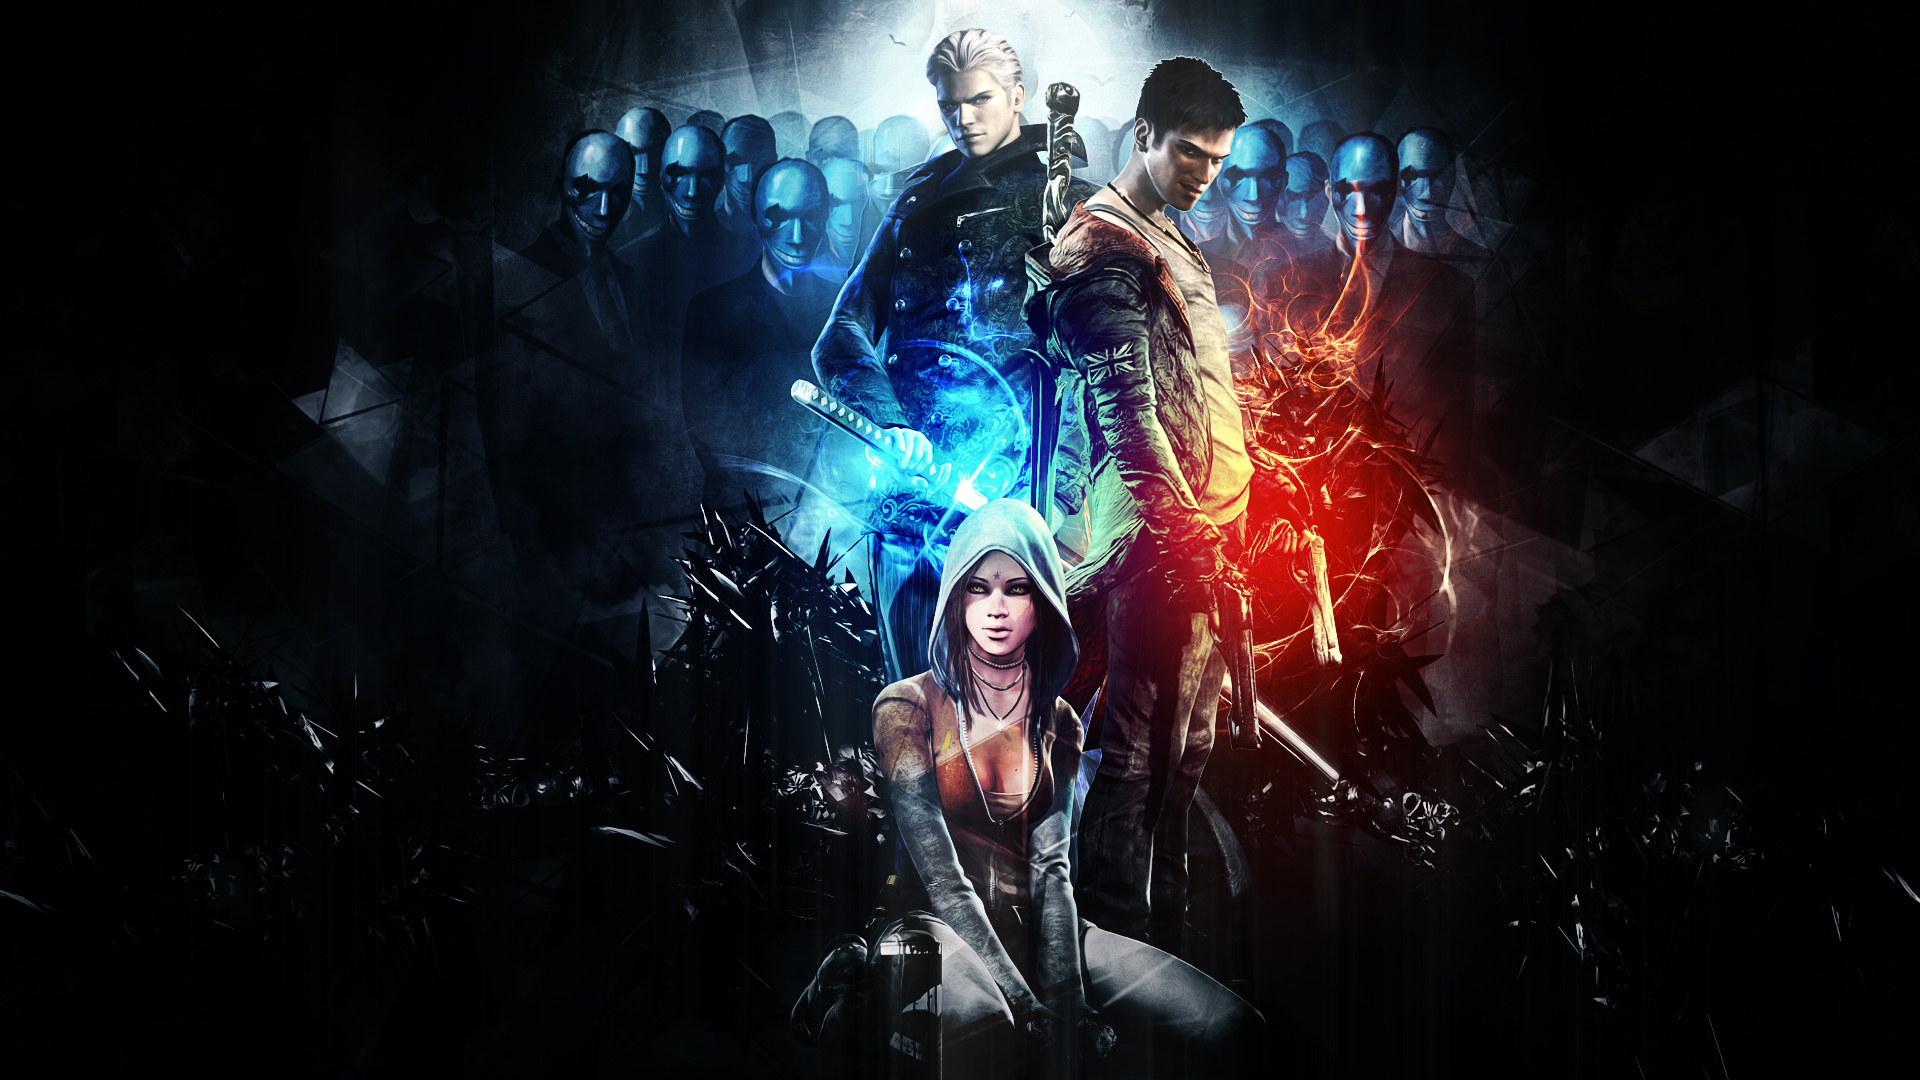 Devil may cry wallpapers pictures images - Devil may cry hd pics ...